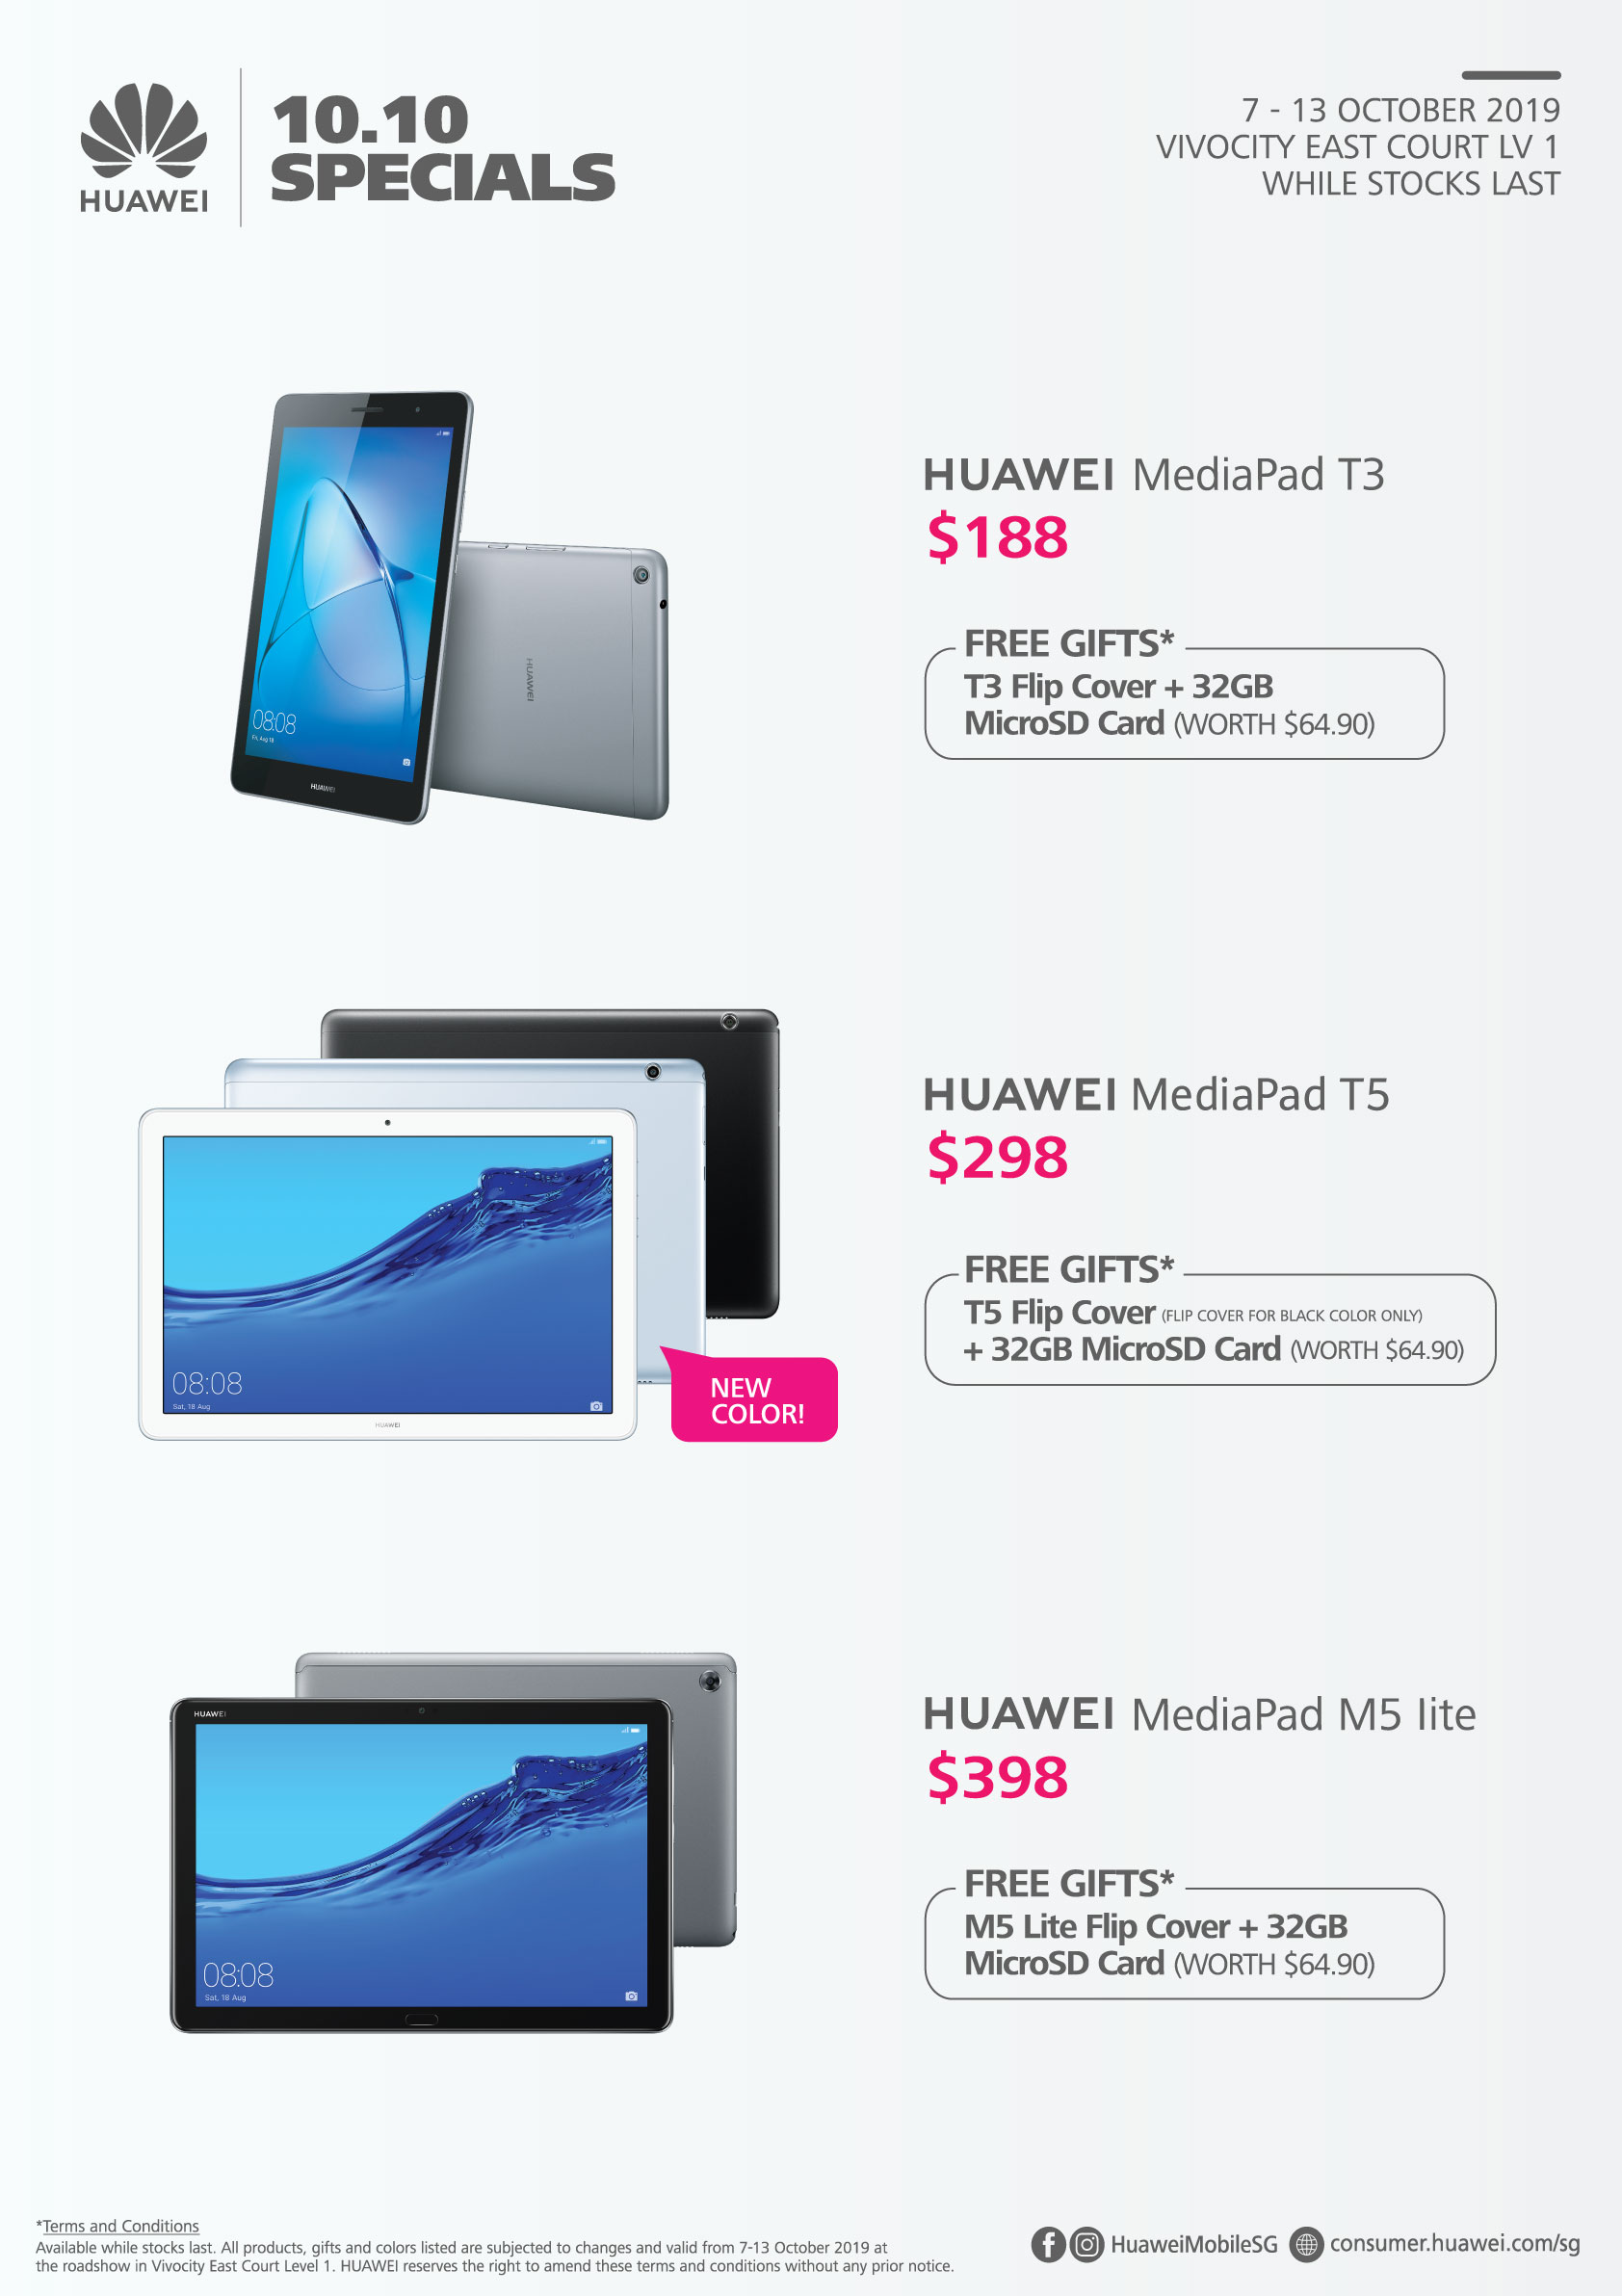 Get up to 50% off HUAWEI products and receive exclusive gift bundles at VivoCity this 10 October – Attack! - Alvinology